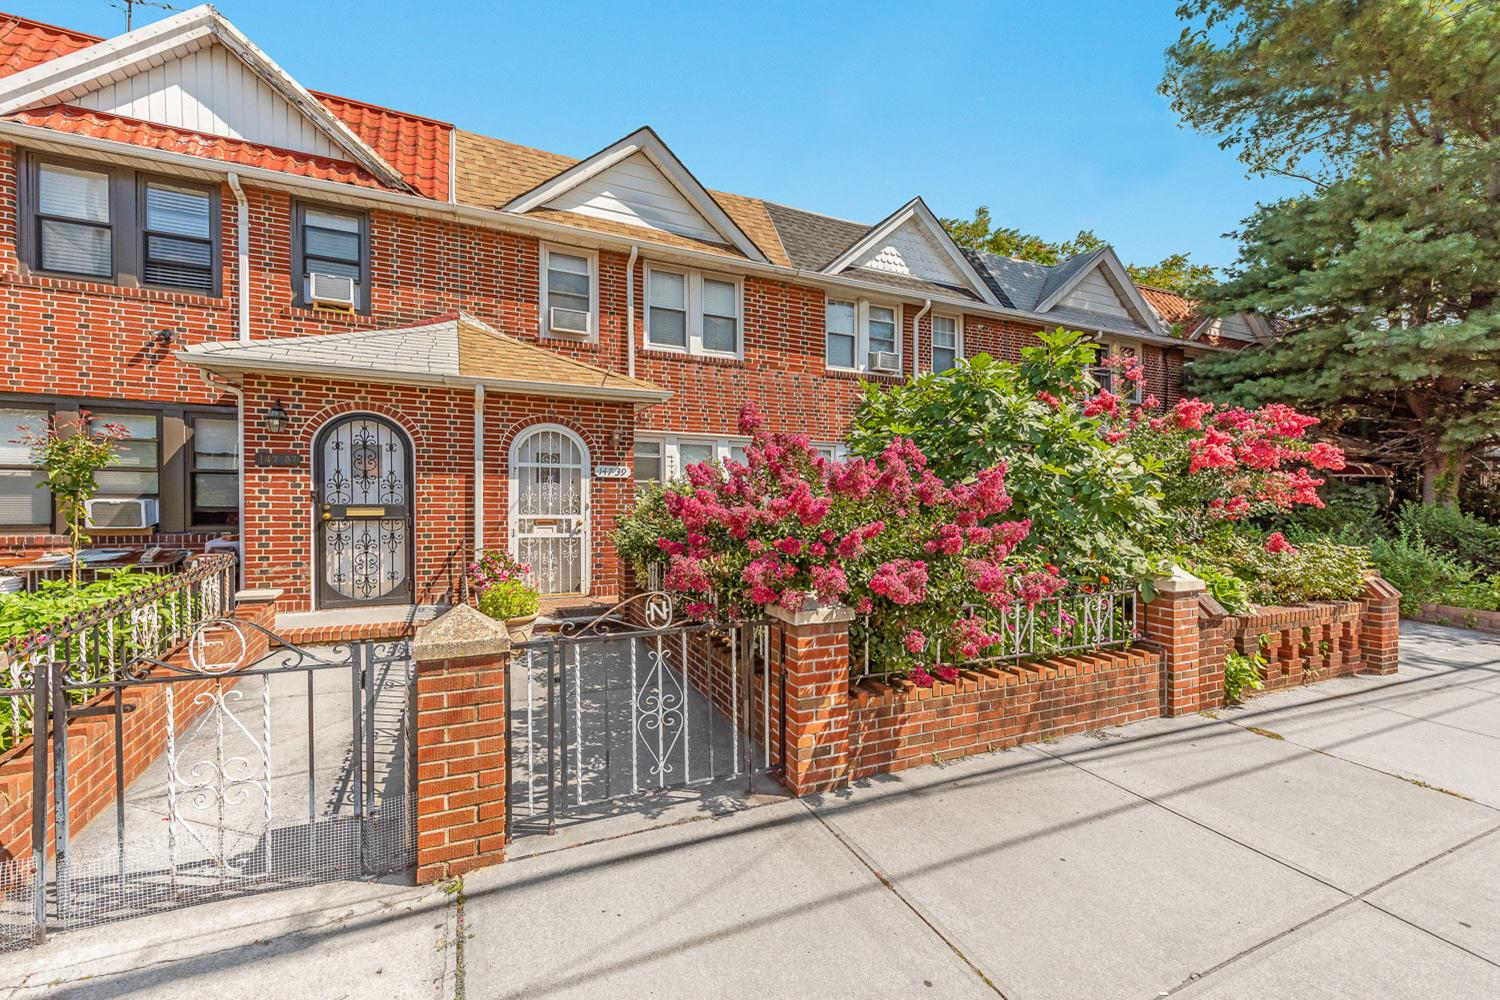 147-39 Hoover Avenue Briarwood Queens NY 11435